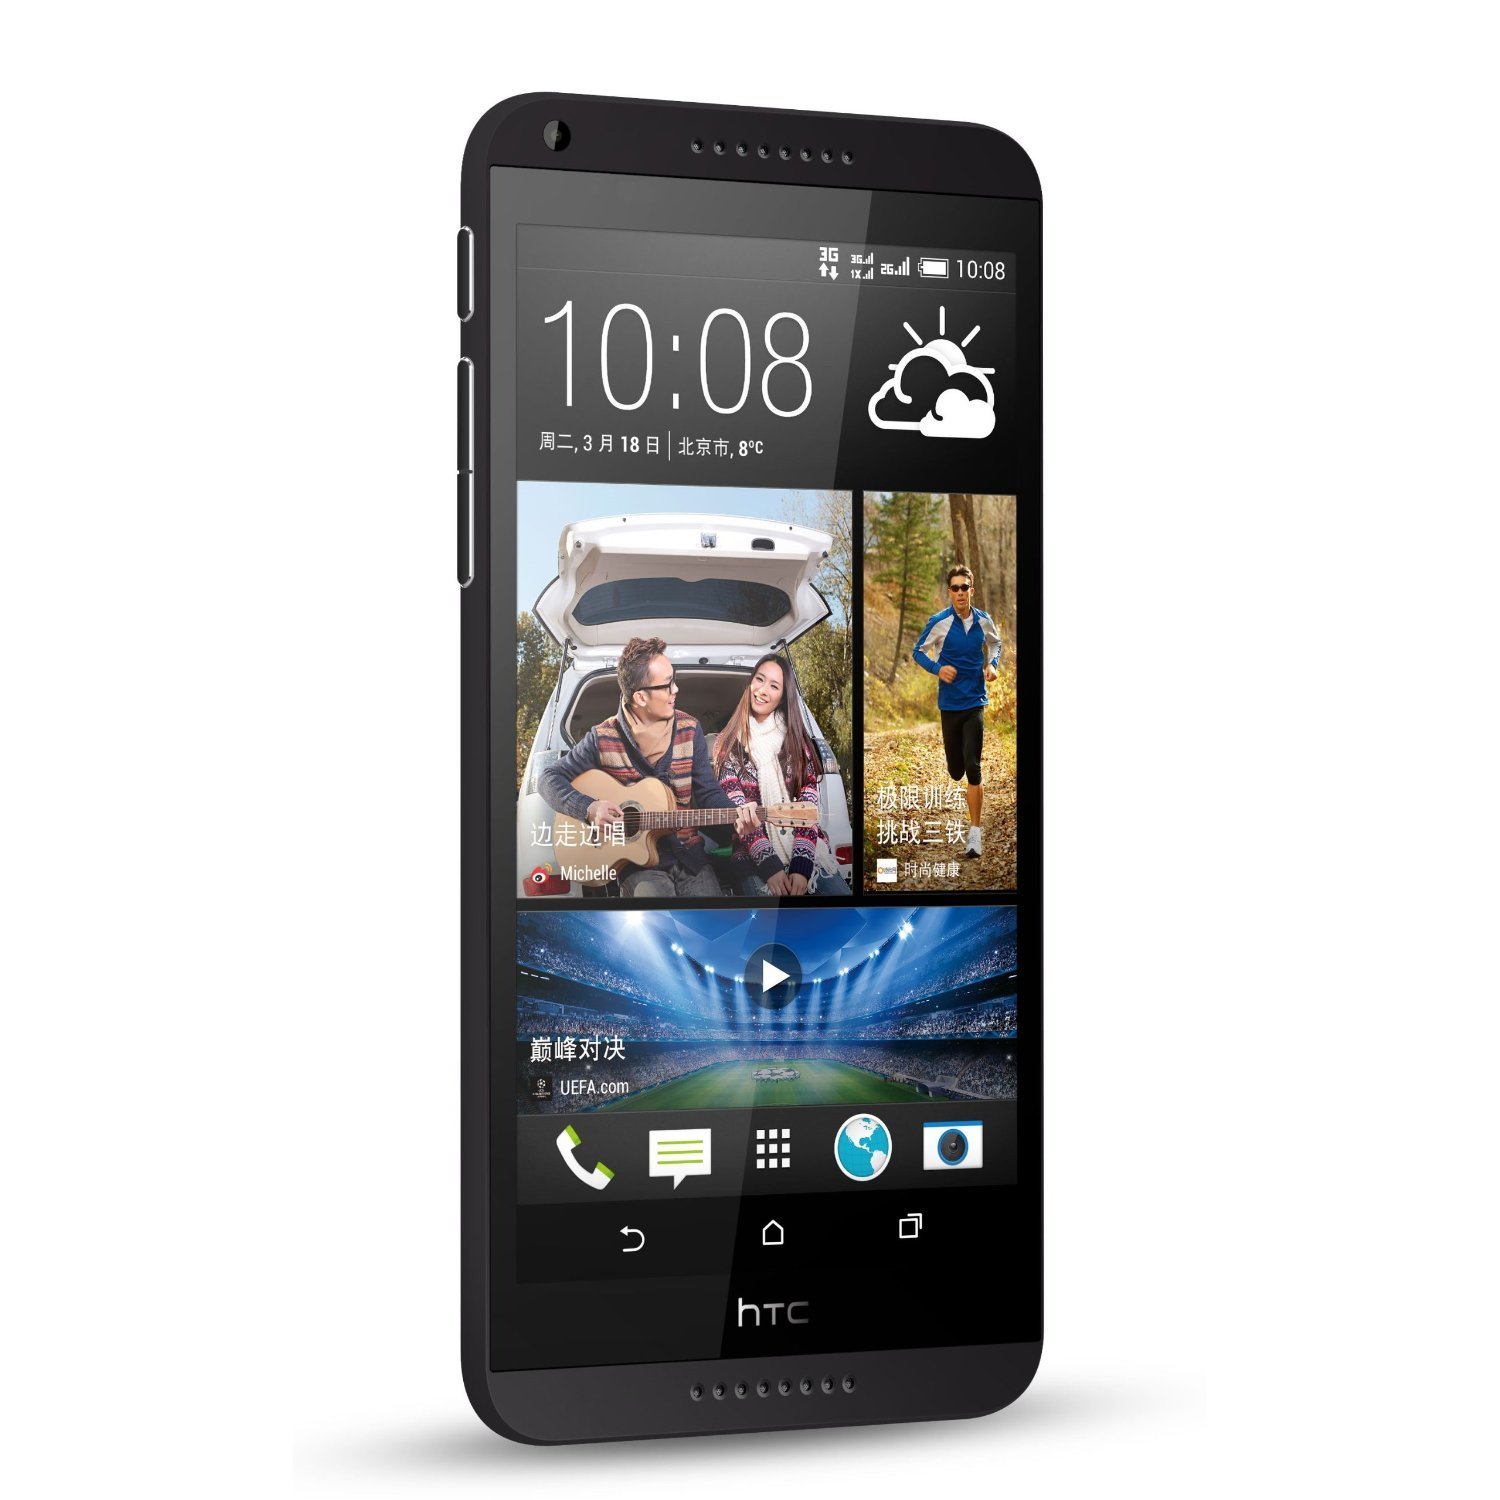 Amazon.com: HTC Desire 816w 5.5 inch Android 4.4 MSM8228 Quad Core 1.6GHz  13.0 MP Dual Sim Unlocked 3G HSPA Smartphone Color Grey: Cell Phones &  Accessories